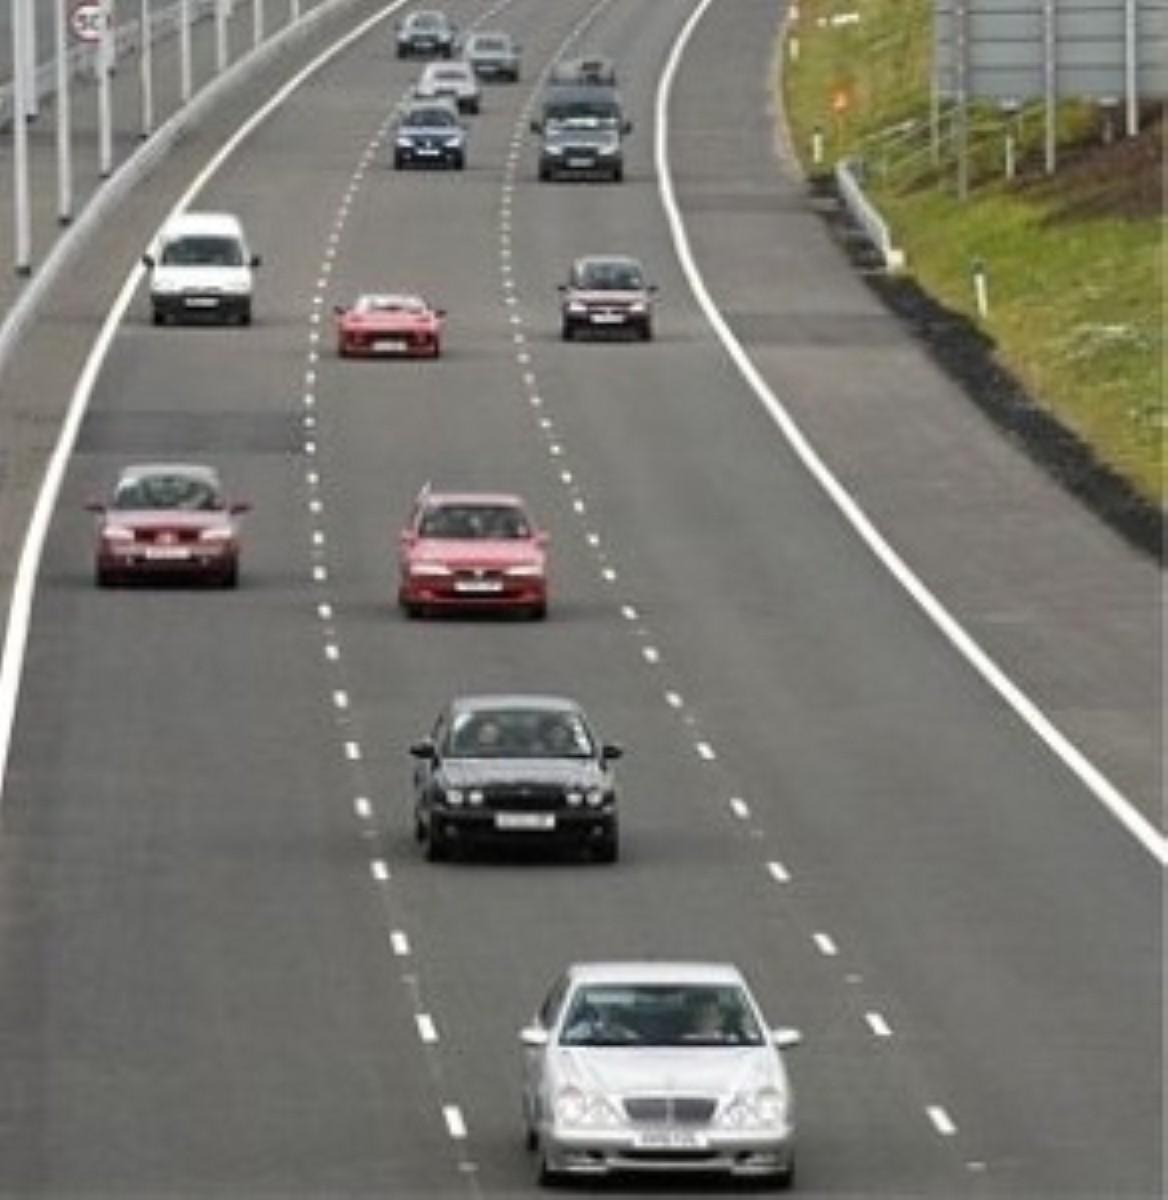 Middle lane keeps older drivers safe